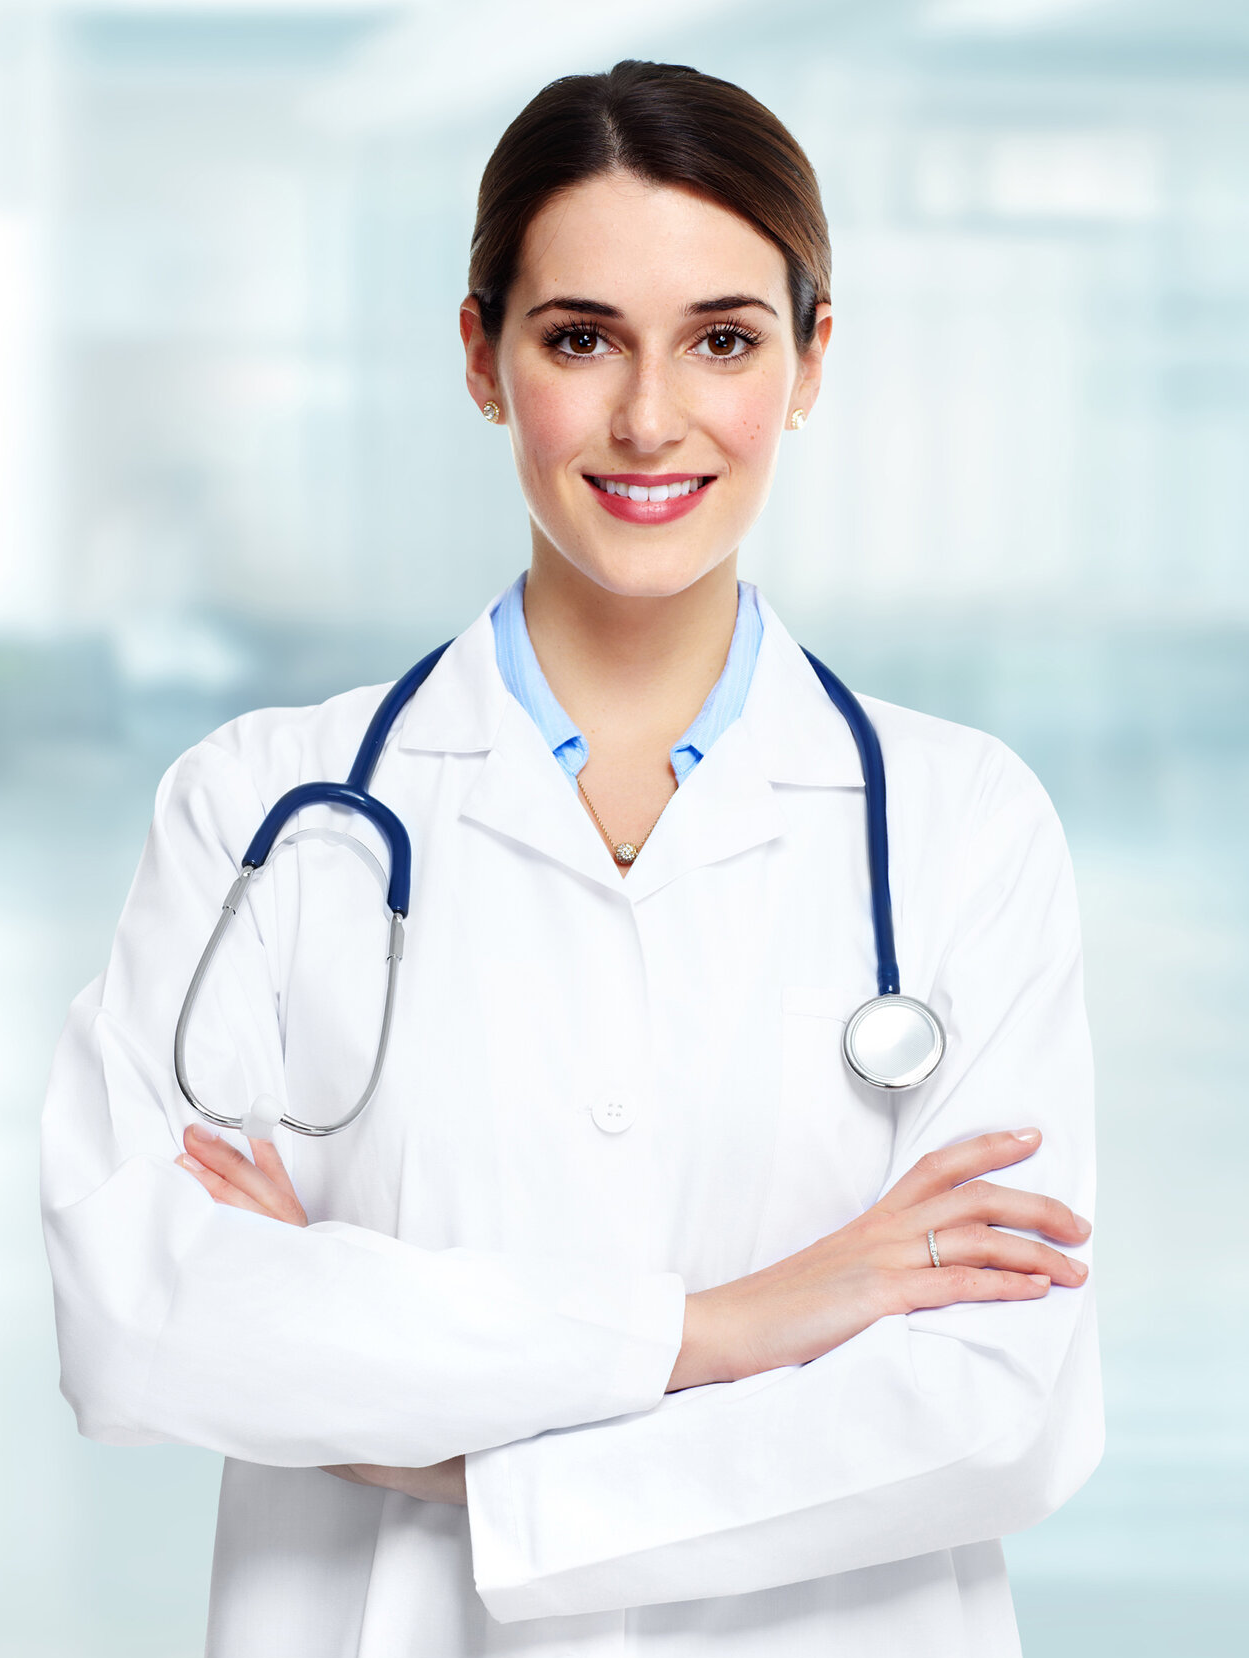 OUTSOURCE PHYSICIAN BILLING SERVICES